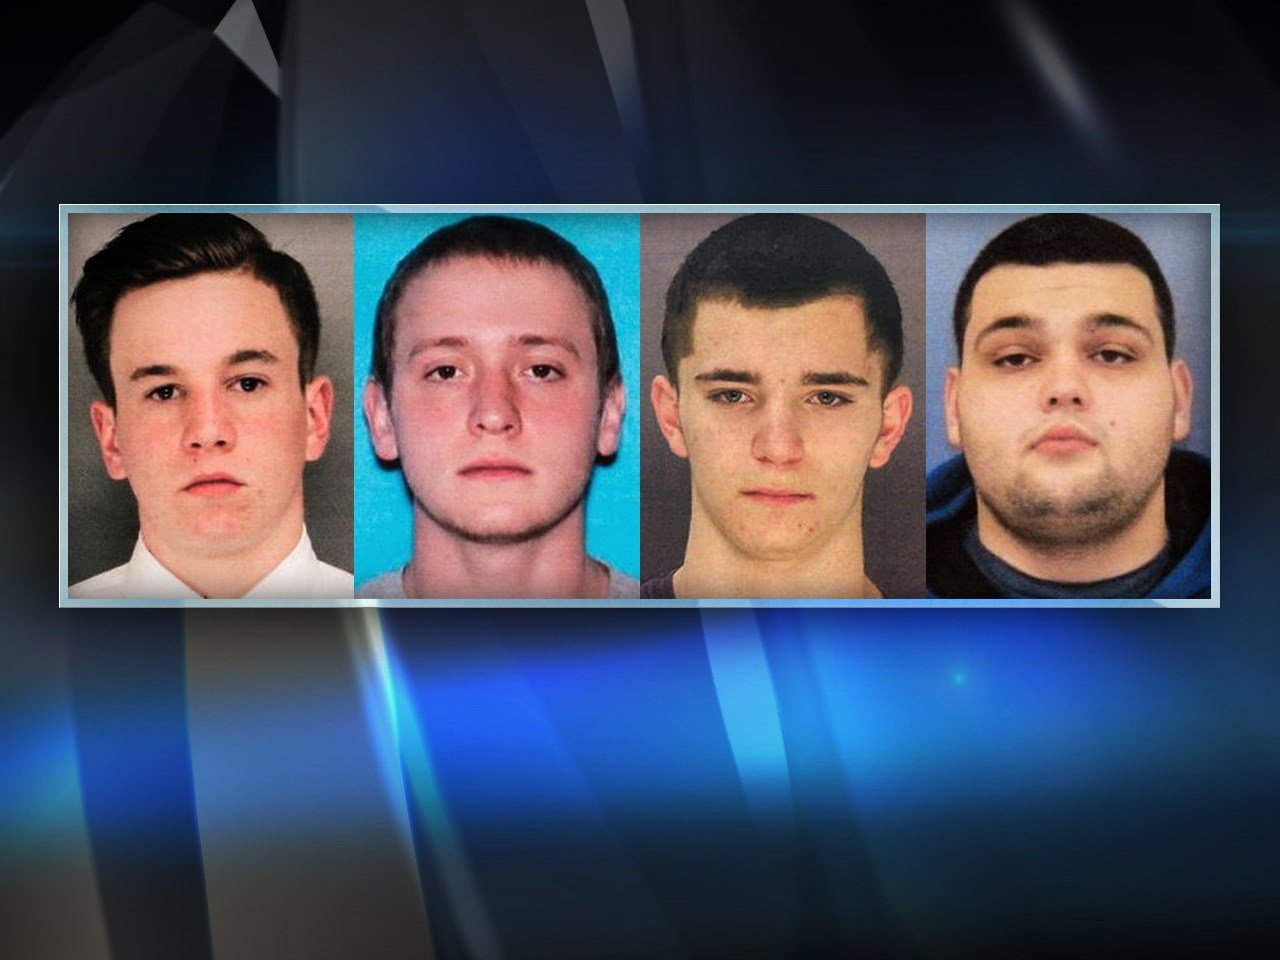 Human remains found in search for 4 missing Pennsylvania men